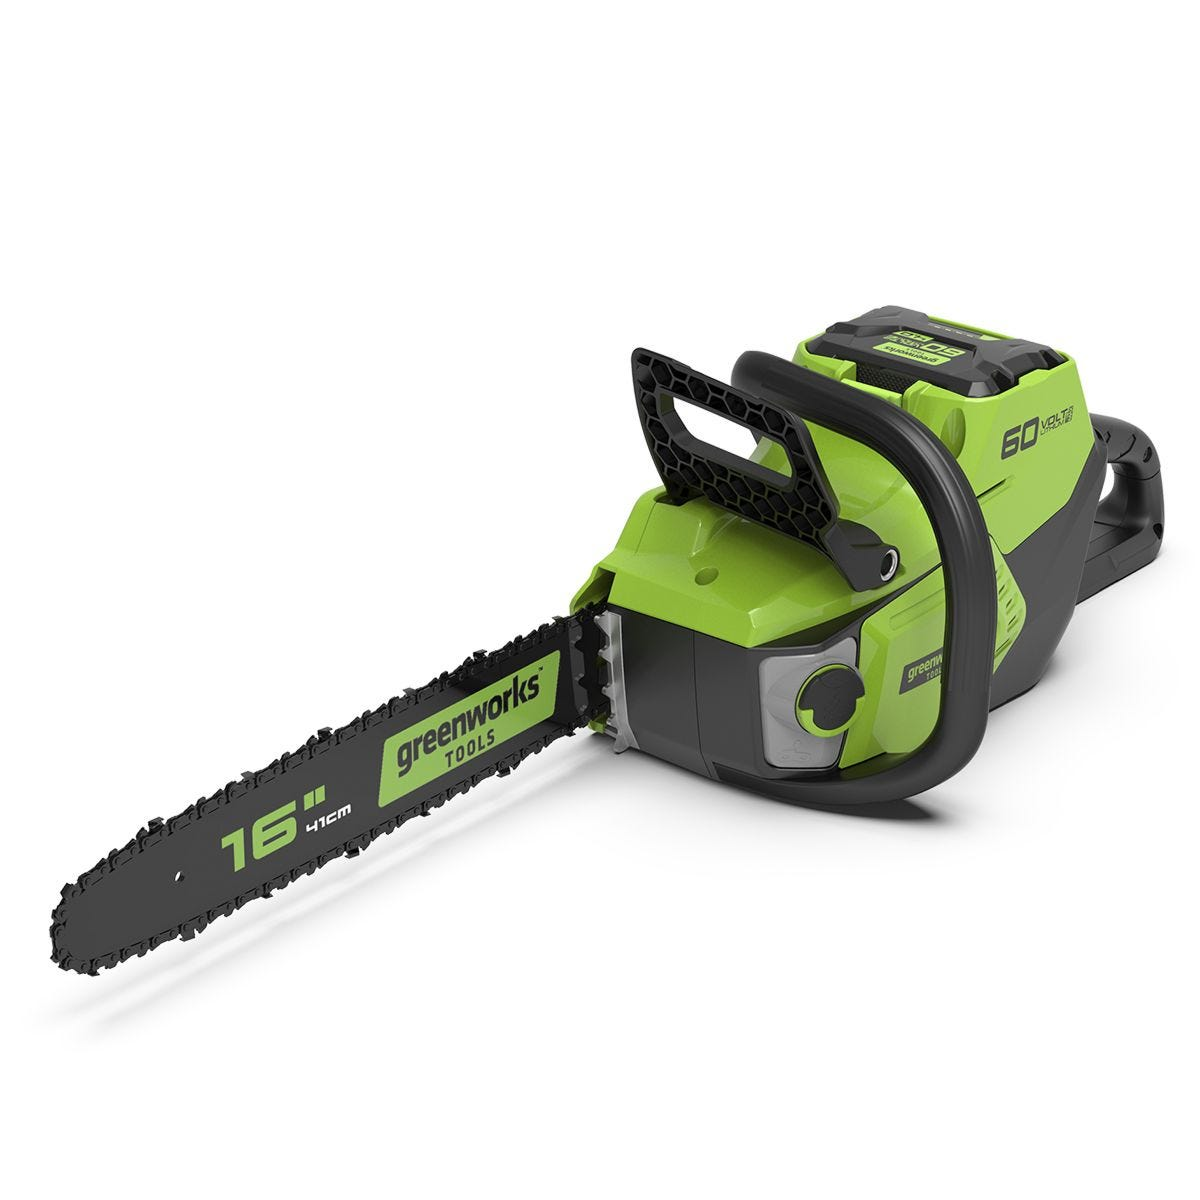 Greenworks 60V DigiPro 40cm Cordless Chainsaw (Tool Only)